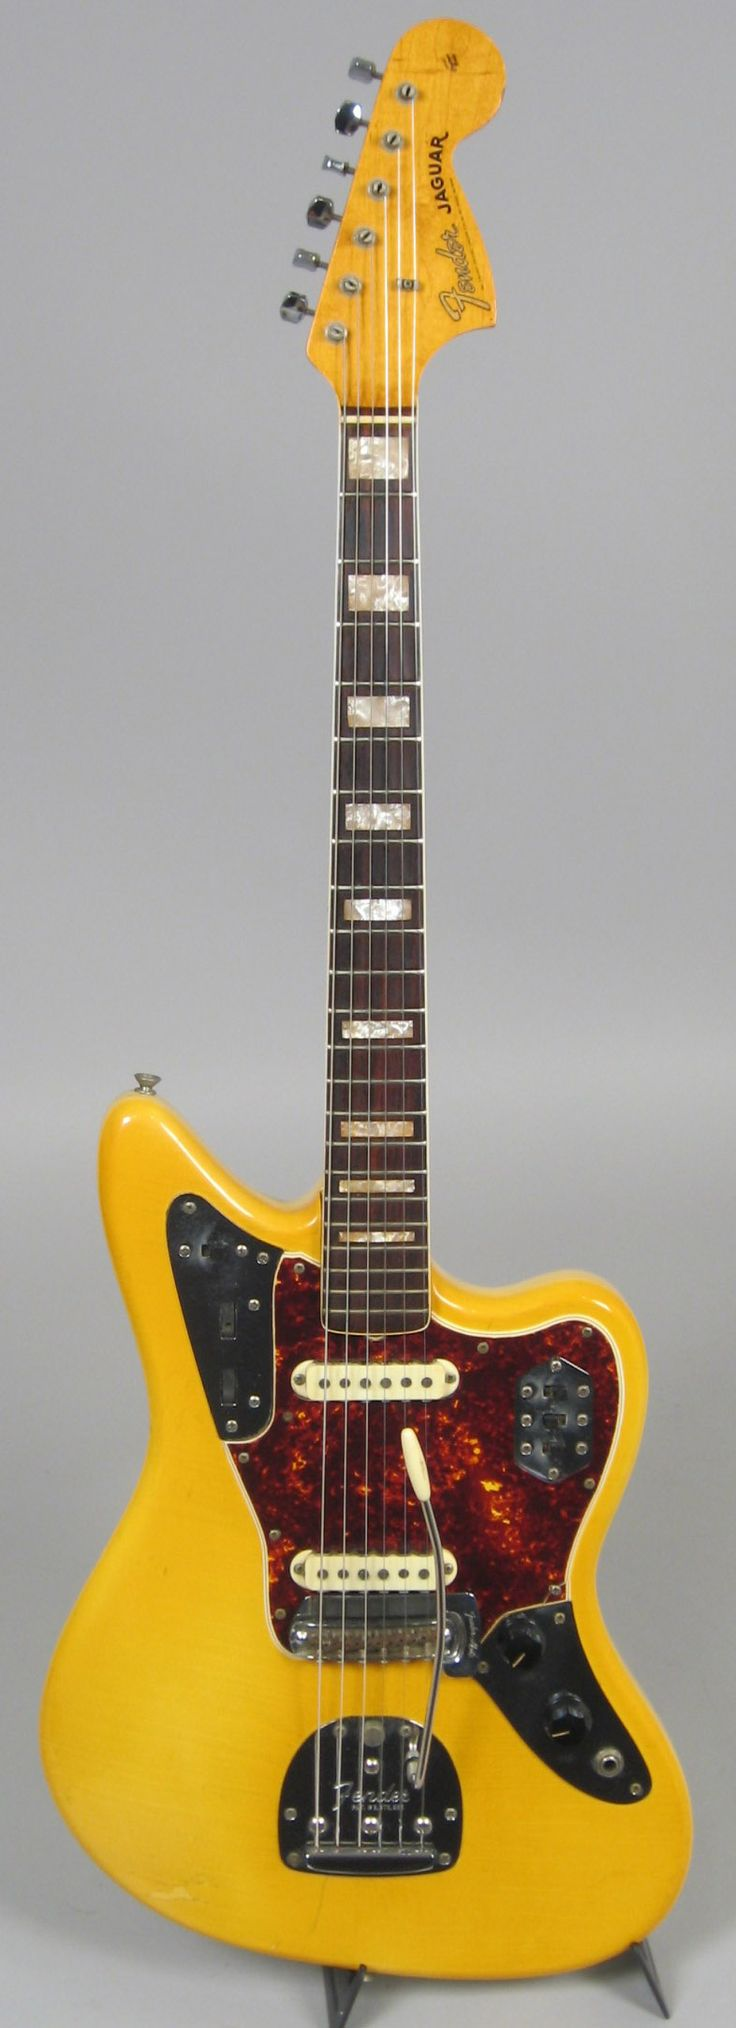 1966 Fender Jaguar. Blonde, but the lacquer has yellowed with age, making it really YELLOW. Wow. NEVER seen one like this before. I don't like yellow, as a rule, but it just works here.